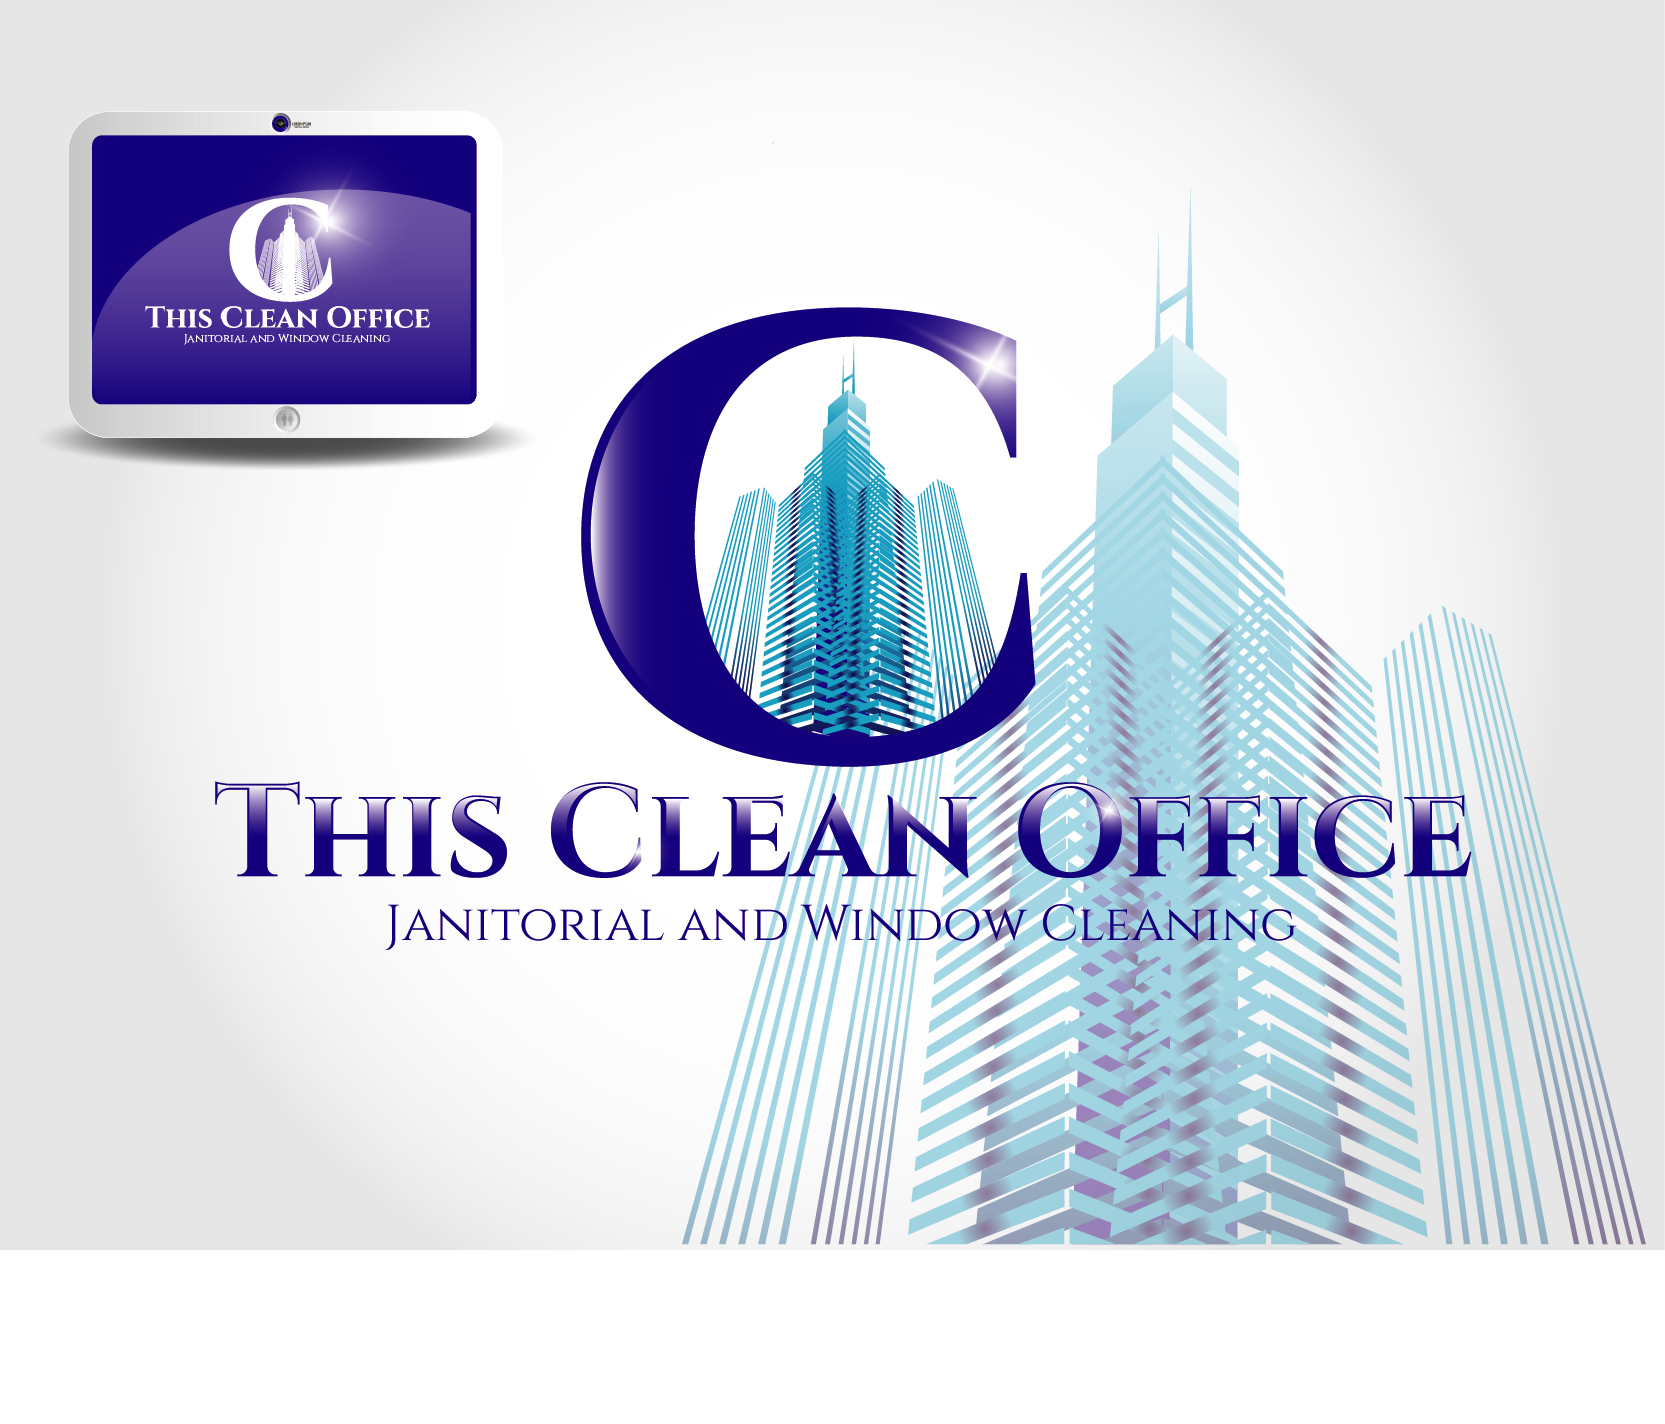 Logo Design by VENTSISLAV KOVACHEV - Entry No. 65 in the Logo Design Contest Professional and Unforgettable Logo Design for This Clean Office.